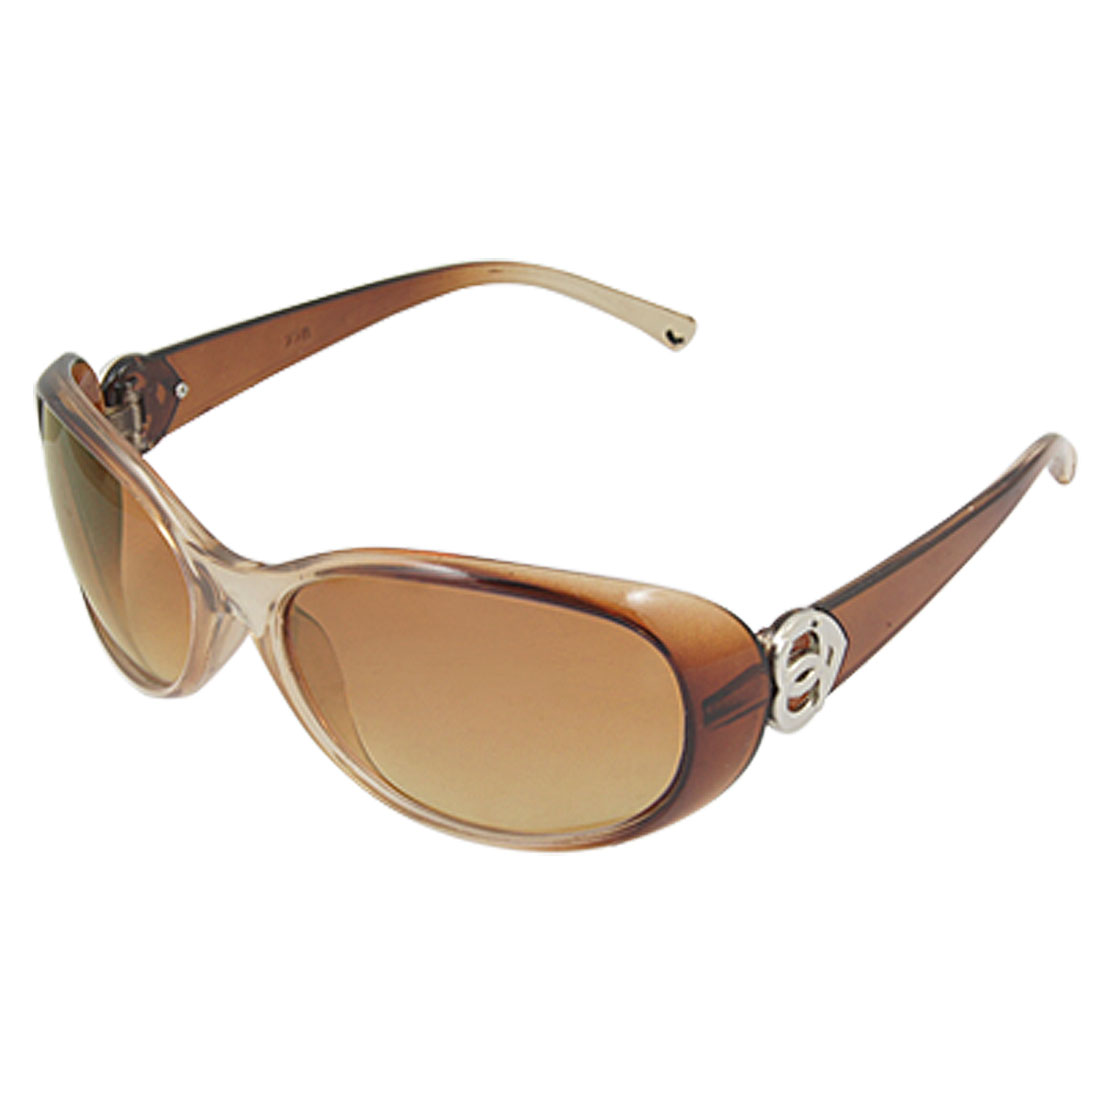 Full Rim Ellipse Lens Plastic Sunglasses Brown for Lady